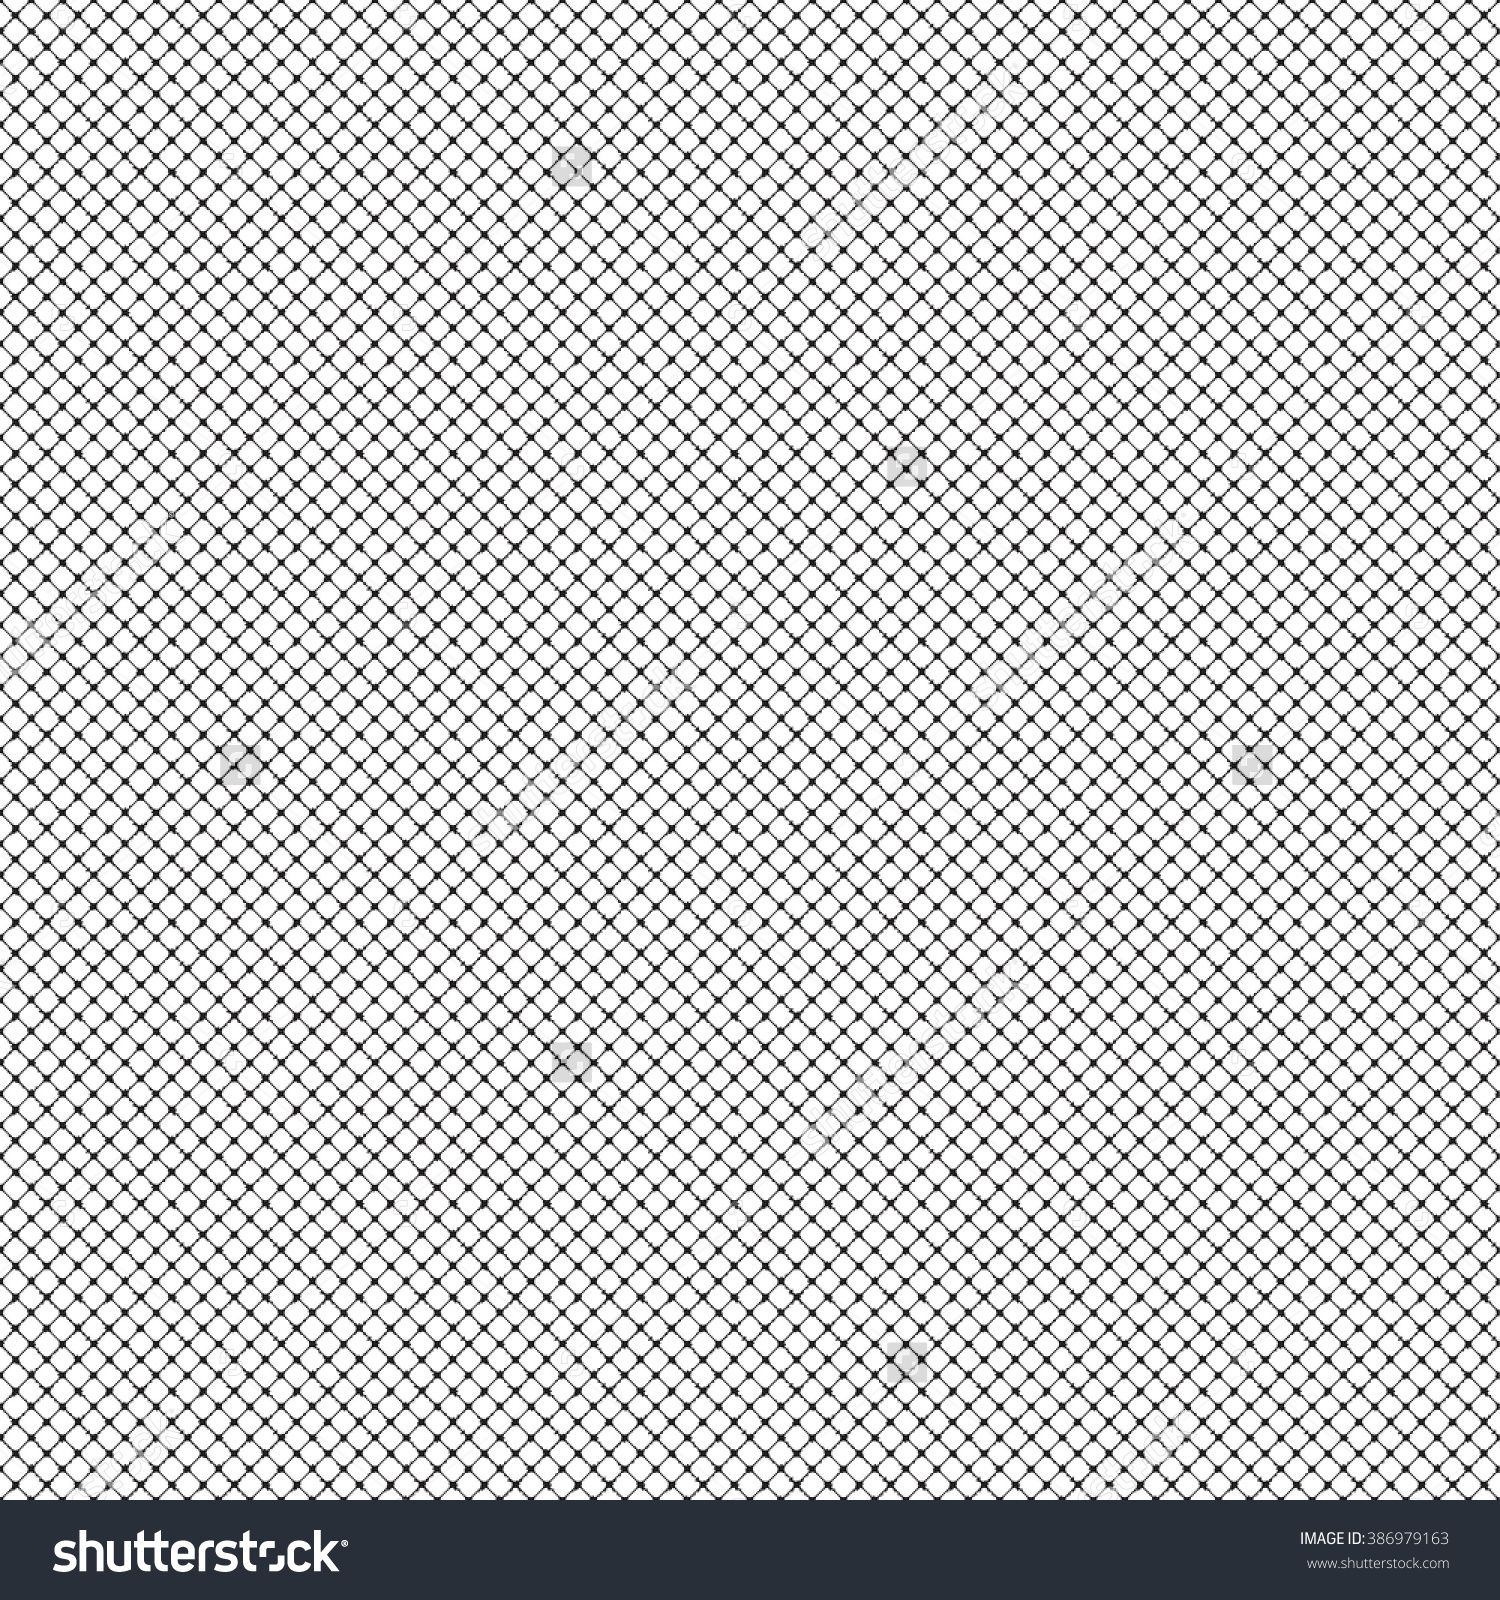 carpet pattern background home. mesh patterngeometric line pattern seamless texture for your designrepeating geometric carpet background home